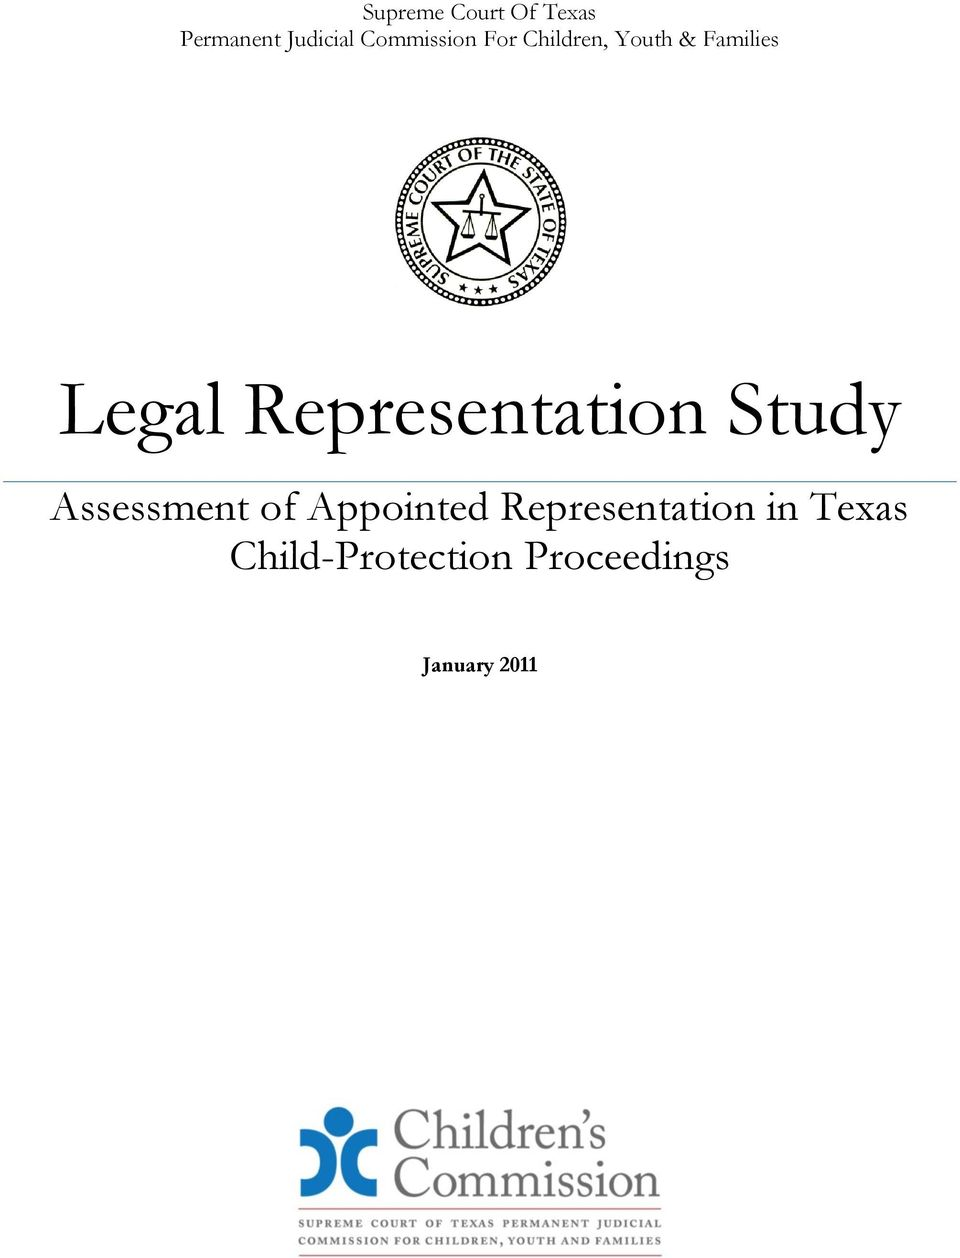 Representation Study Assessment of Appointed